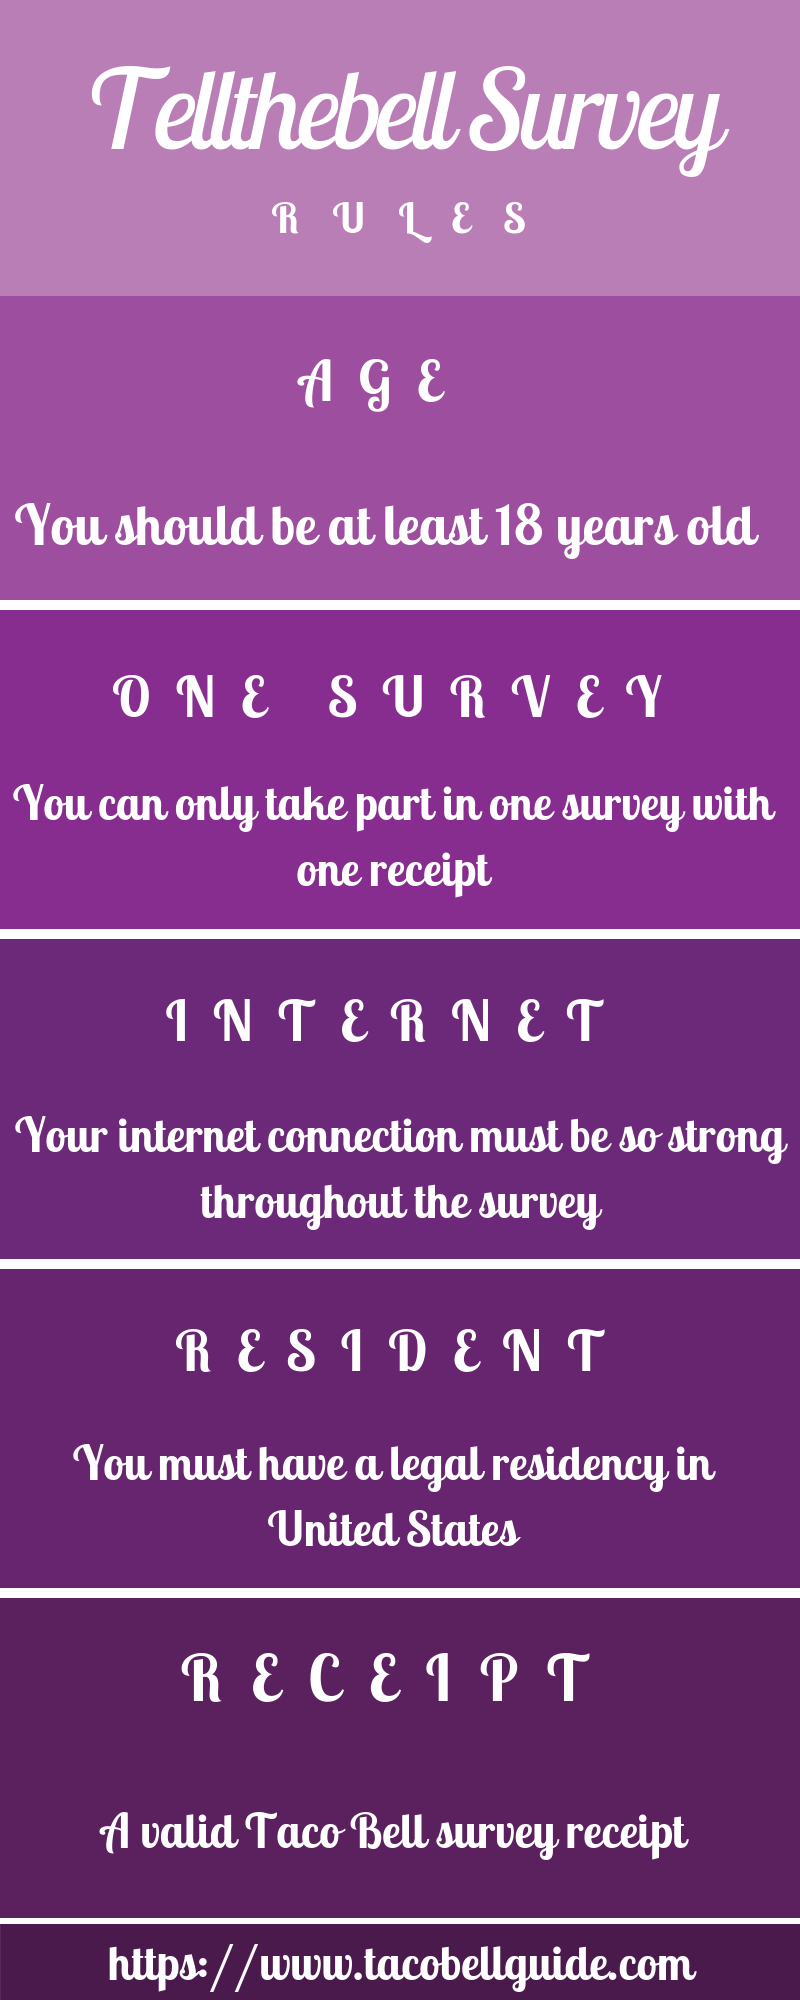 Tellthebell Survey Rules